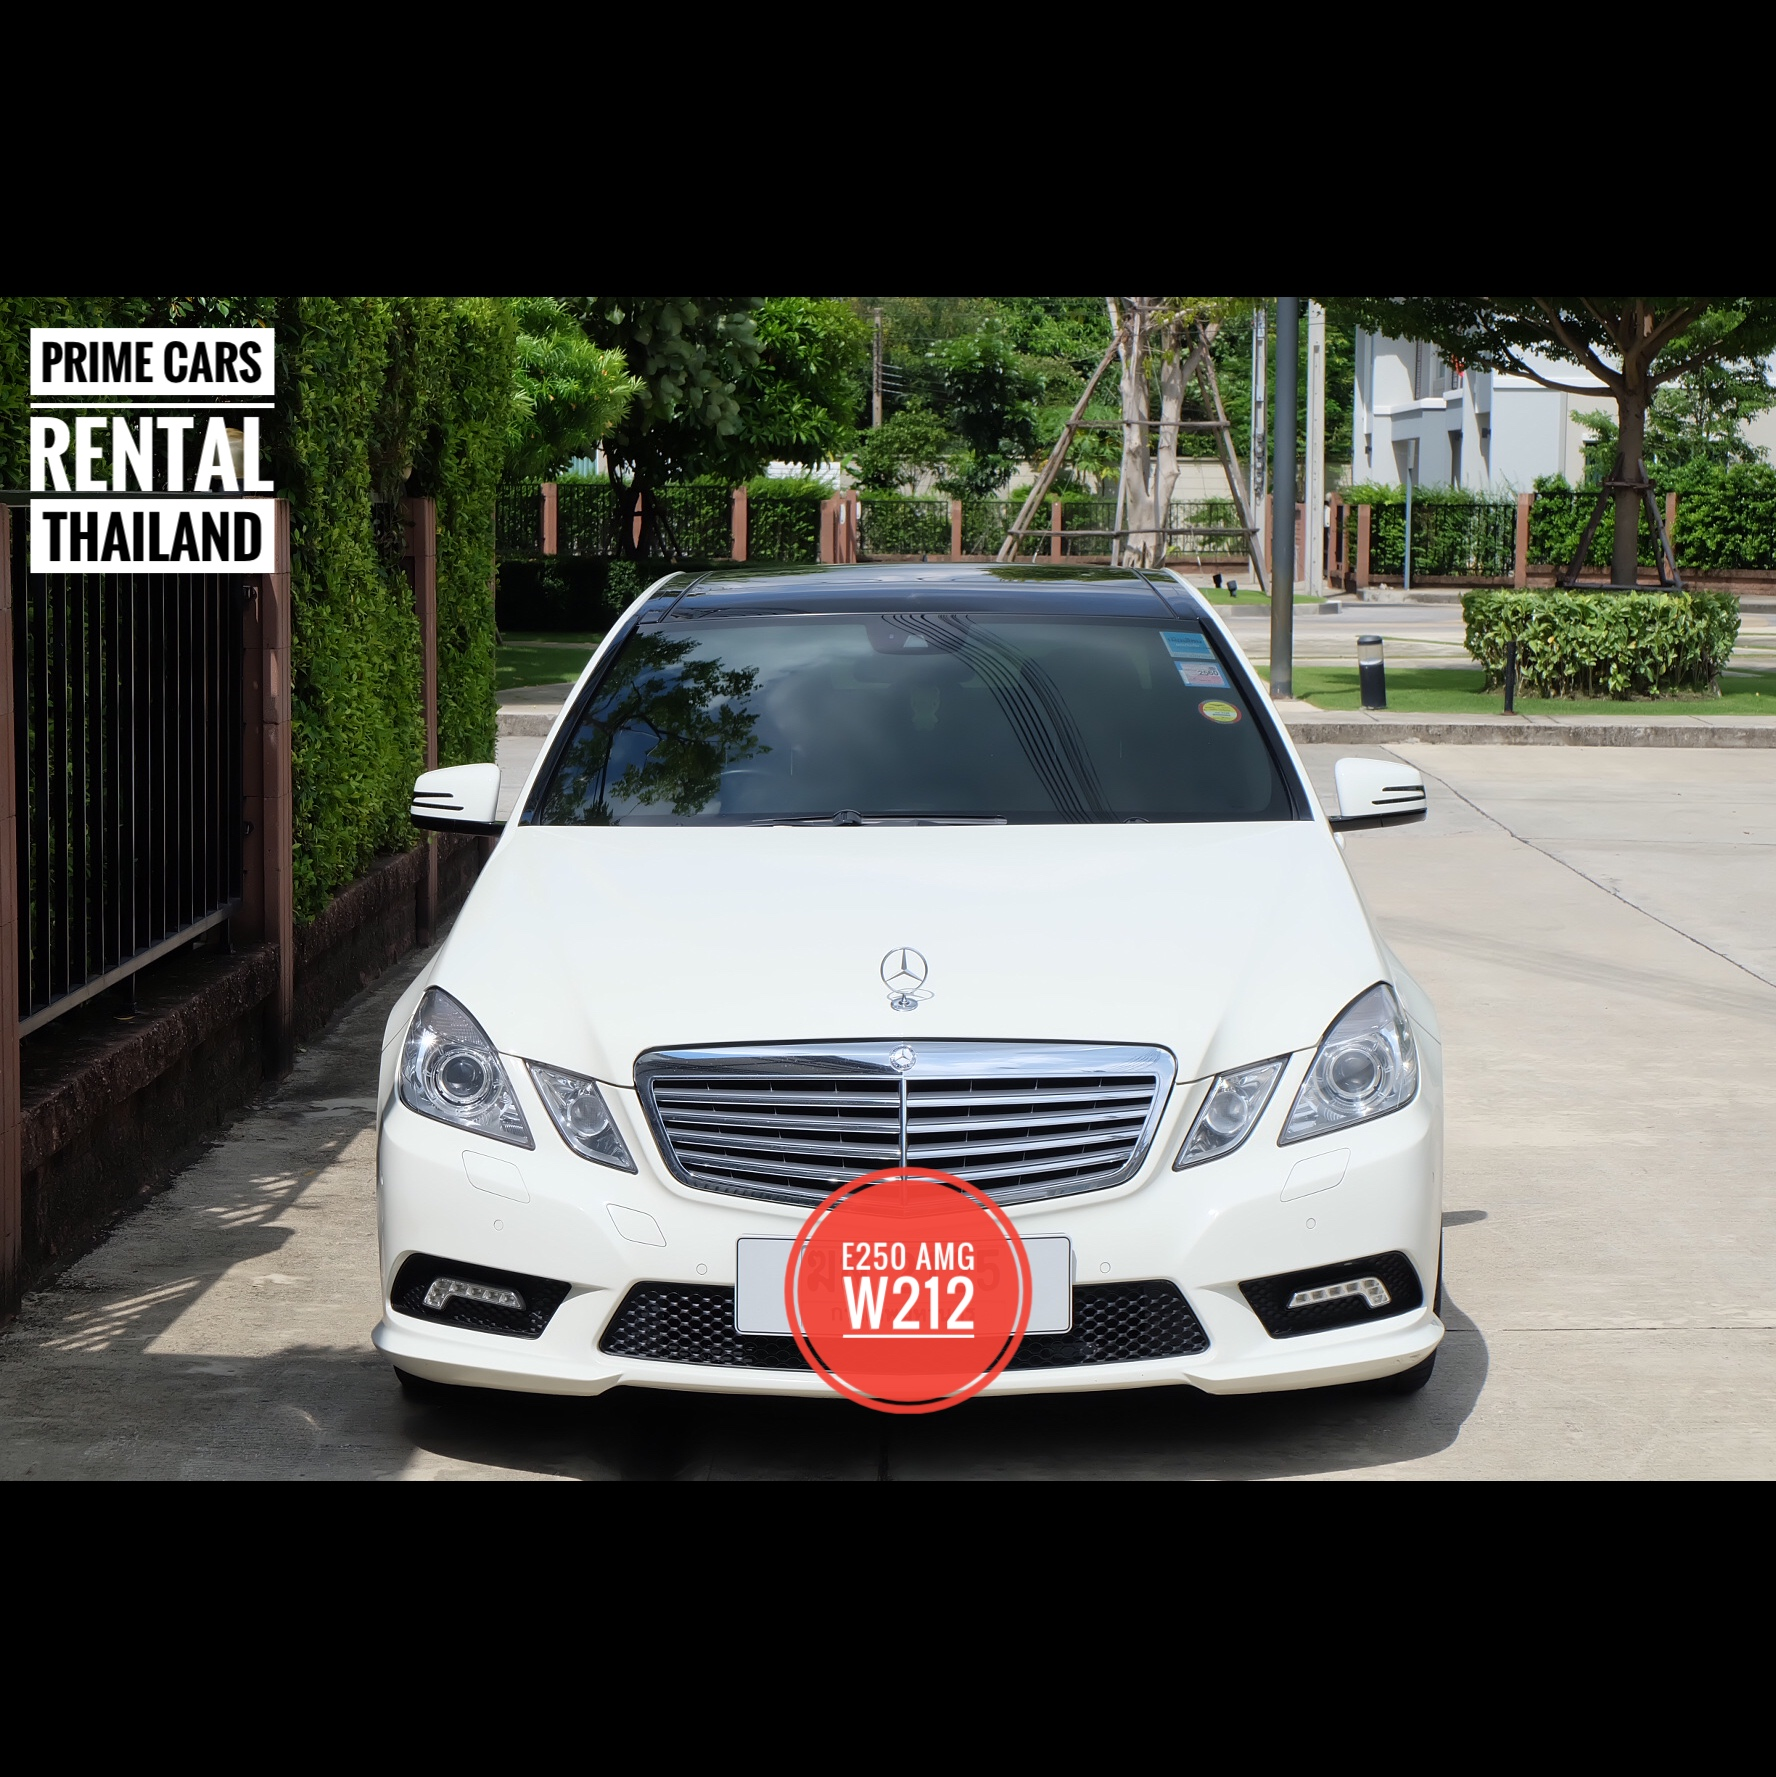 Benz e250 amg prime cars rental for Prime motor cars mercedes benz